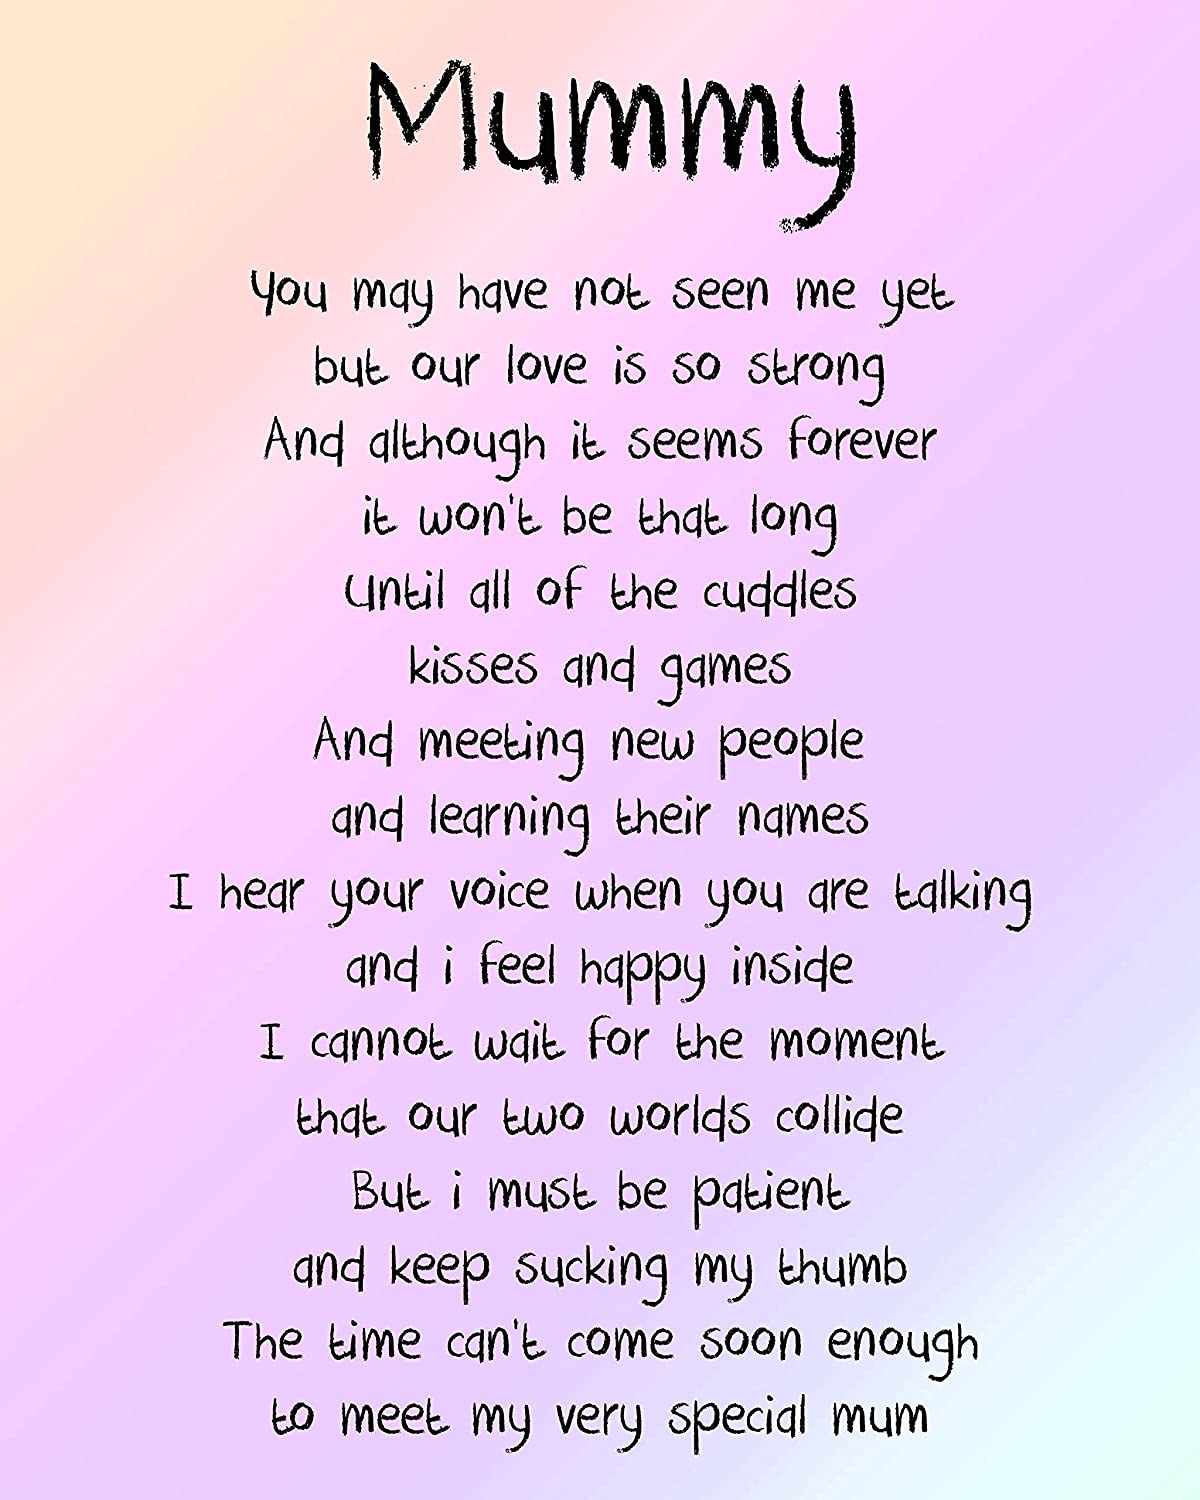 Mummy Love From The Bump Poem 10x8 Picture With Optional Frame Ideal Birthday Mother S Day Gift P3 Unlaminated Amazon Co Uk Kitchen Home 40 short mothers' day poems to wish your mom. mummy love from the bump poem 10x8 picture with optional frame ideal birthday mother s day gift p3 unlaminated